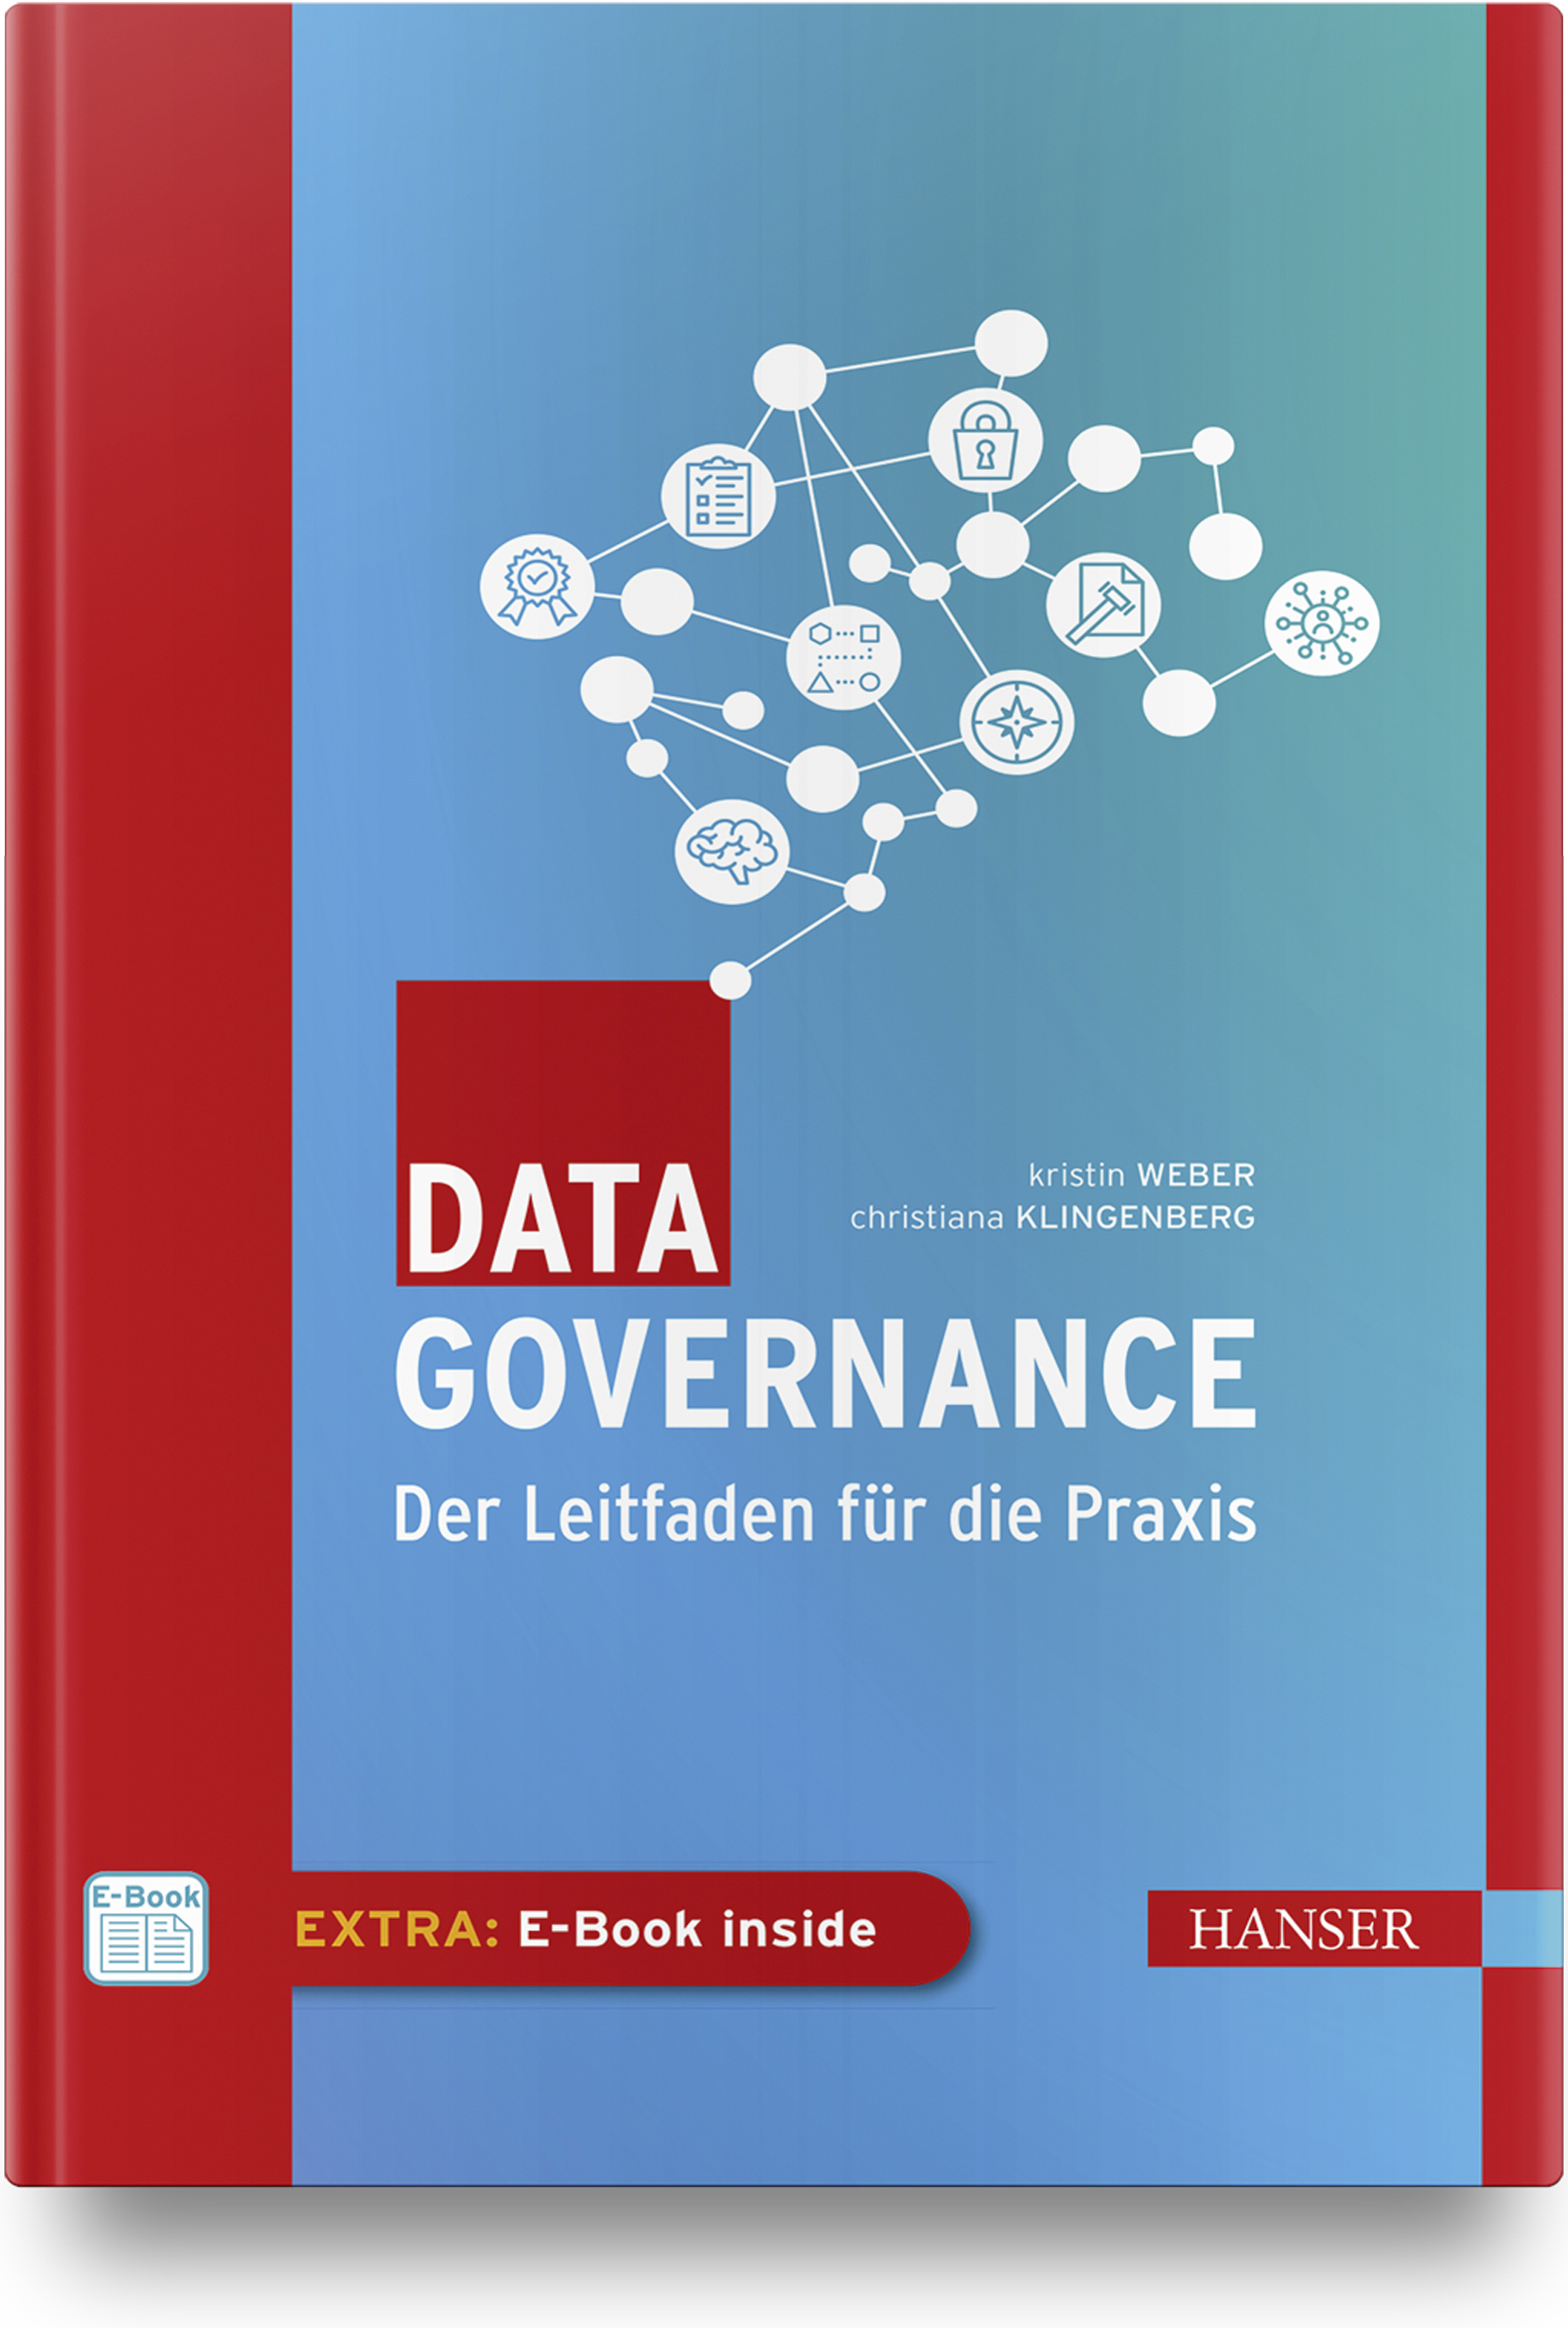 Weber, Klingenberg, Data Governance, 978-3-446-46388-2